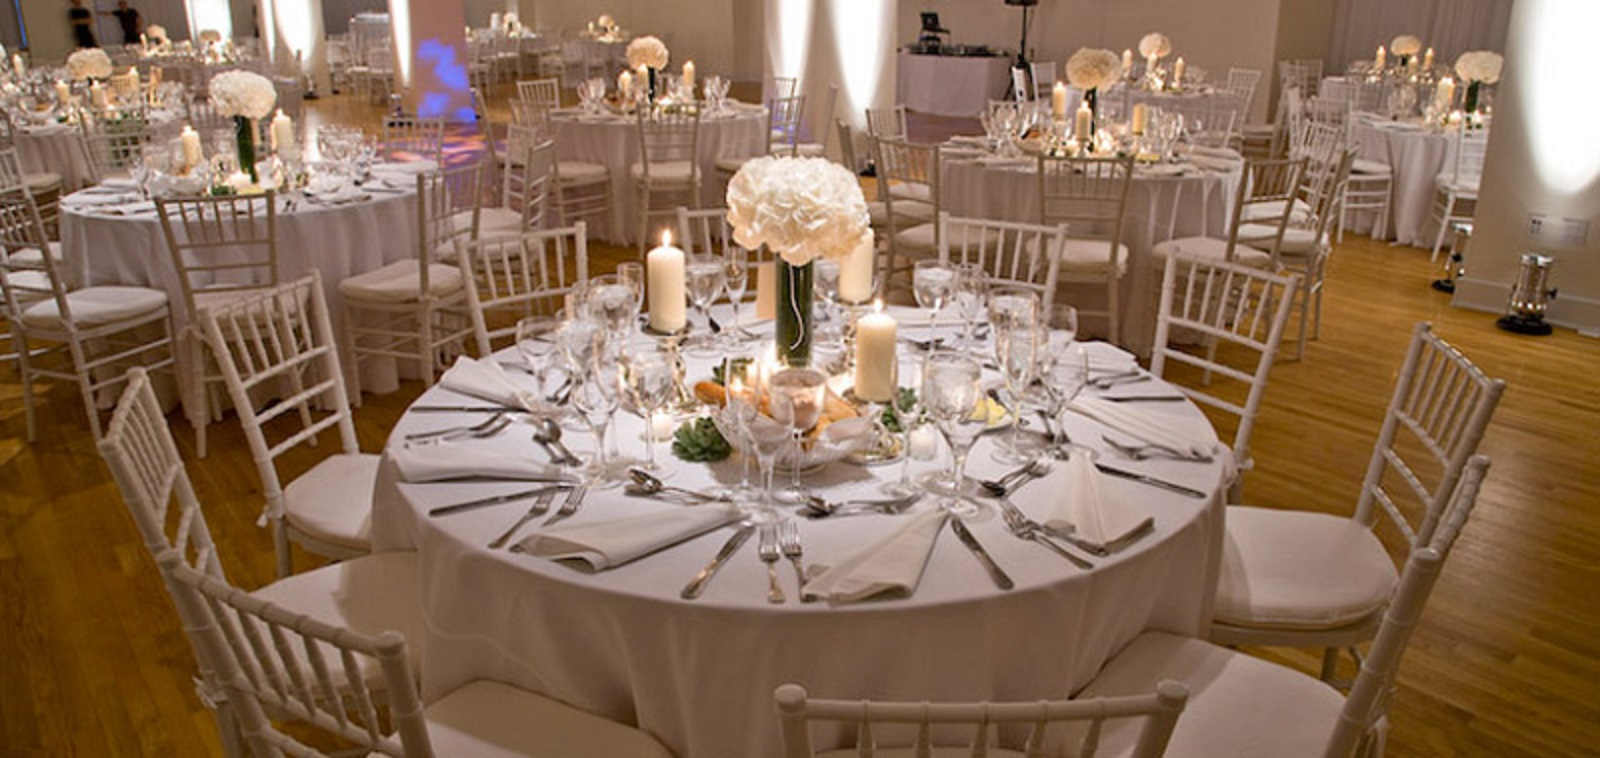 Furniture Warehouse East Point Ga Rentals In Atlanta Ga Event Rental Store Serving 100 Tiny